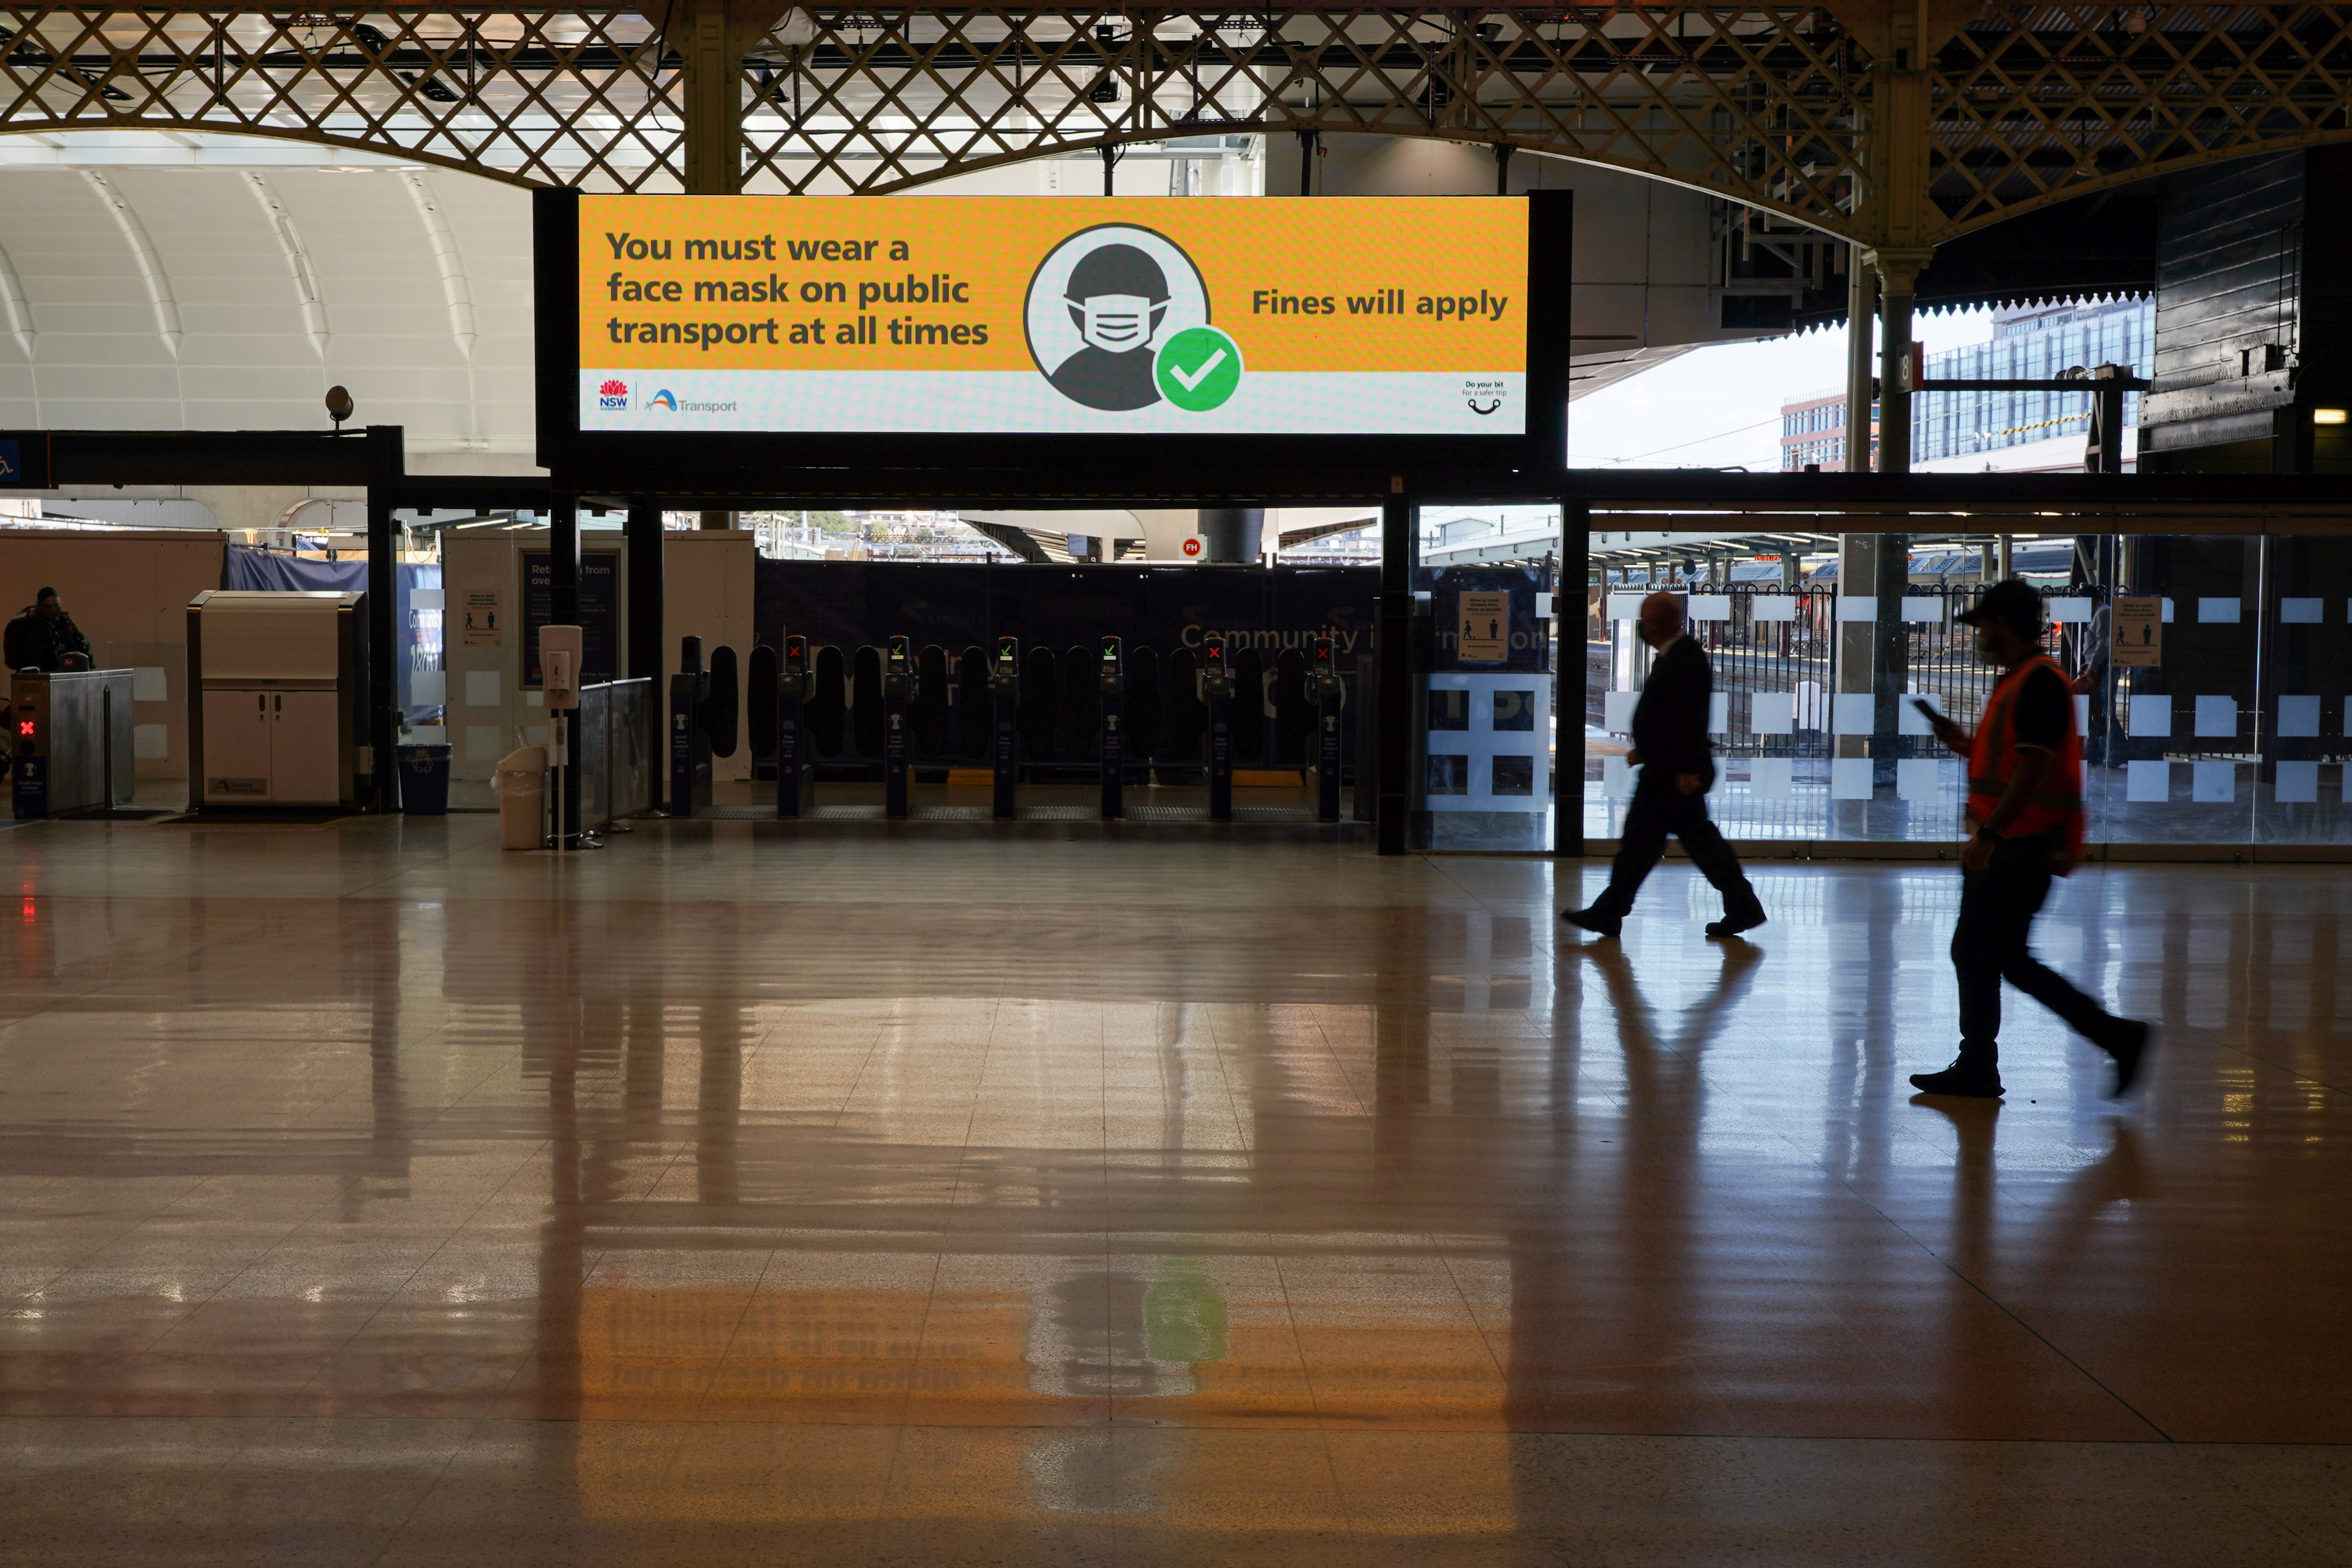 People walk past a public health message regarding the wearing of masks on public transport, at the quiet Central Station during a COVID-19 lockdown in Sydney, Australia, August 20, 2021.  REUTERS/Loren Elliott